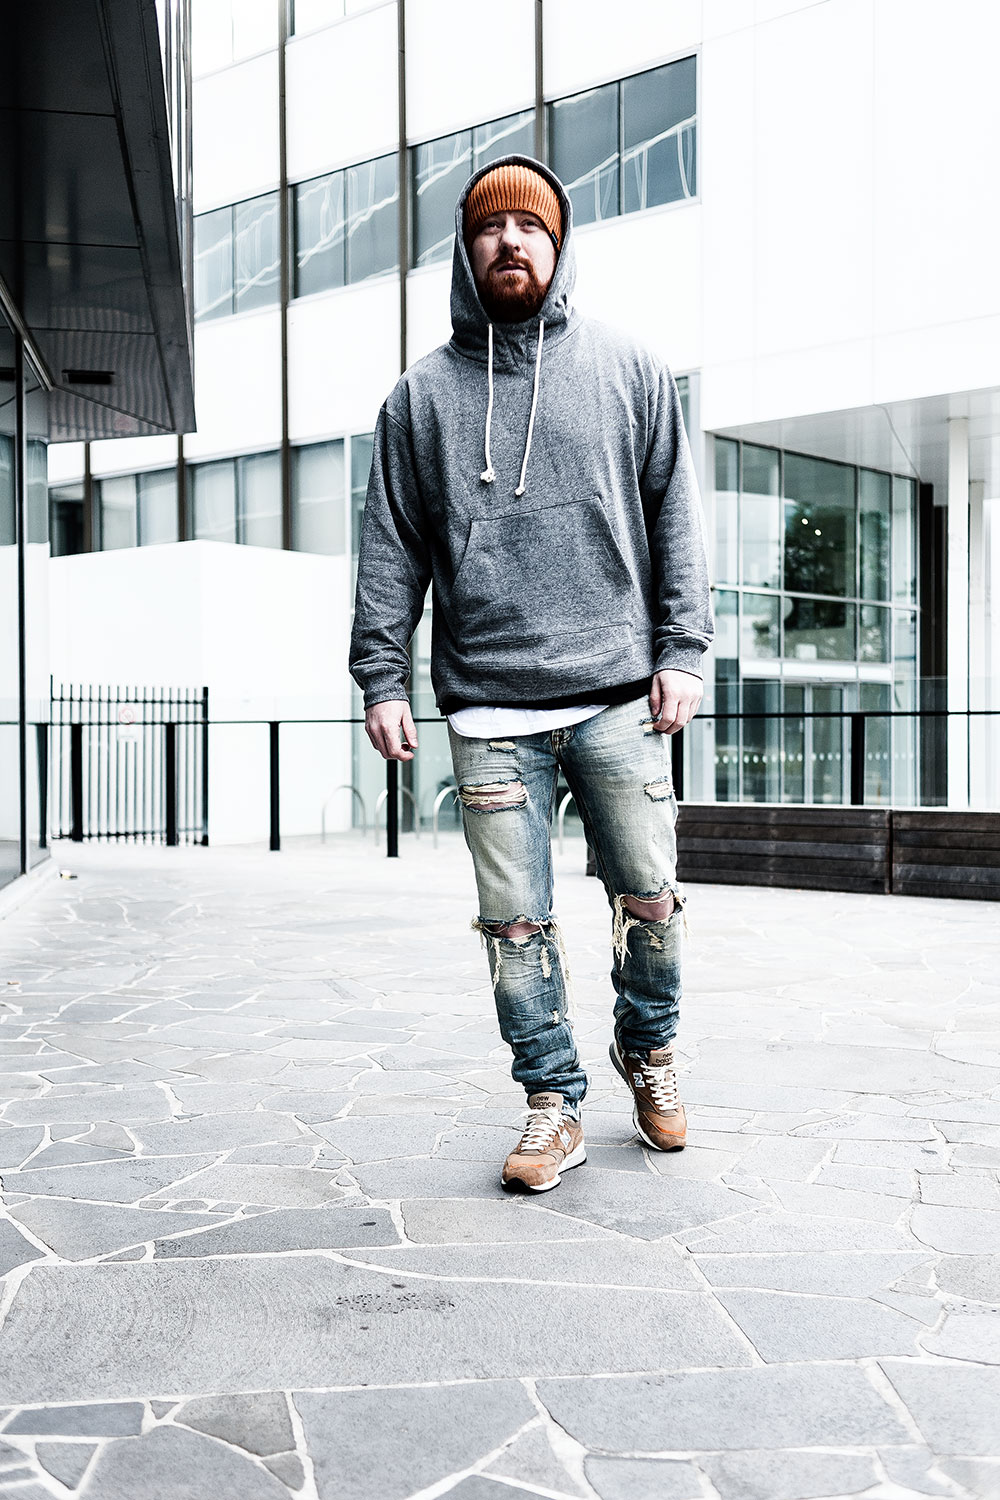 Norse Projects X New Balance M1500NO2 'Danish Weather' Brown Sneakers / MNML M1 Vintage Denim / MNML White Split-Back Scallop Tee / MNML Grey Alpha Hoodie / Nixon Regain Honey Beanie by Tom Cunningham